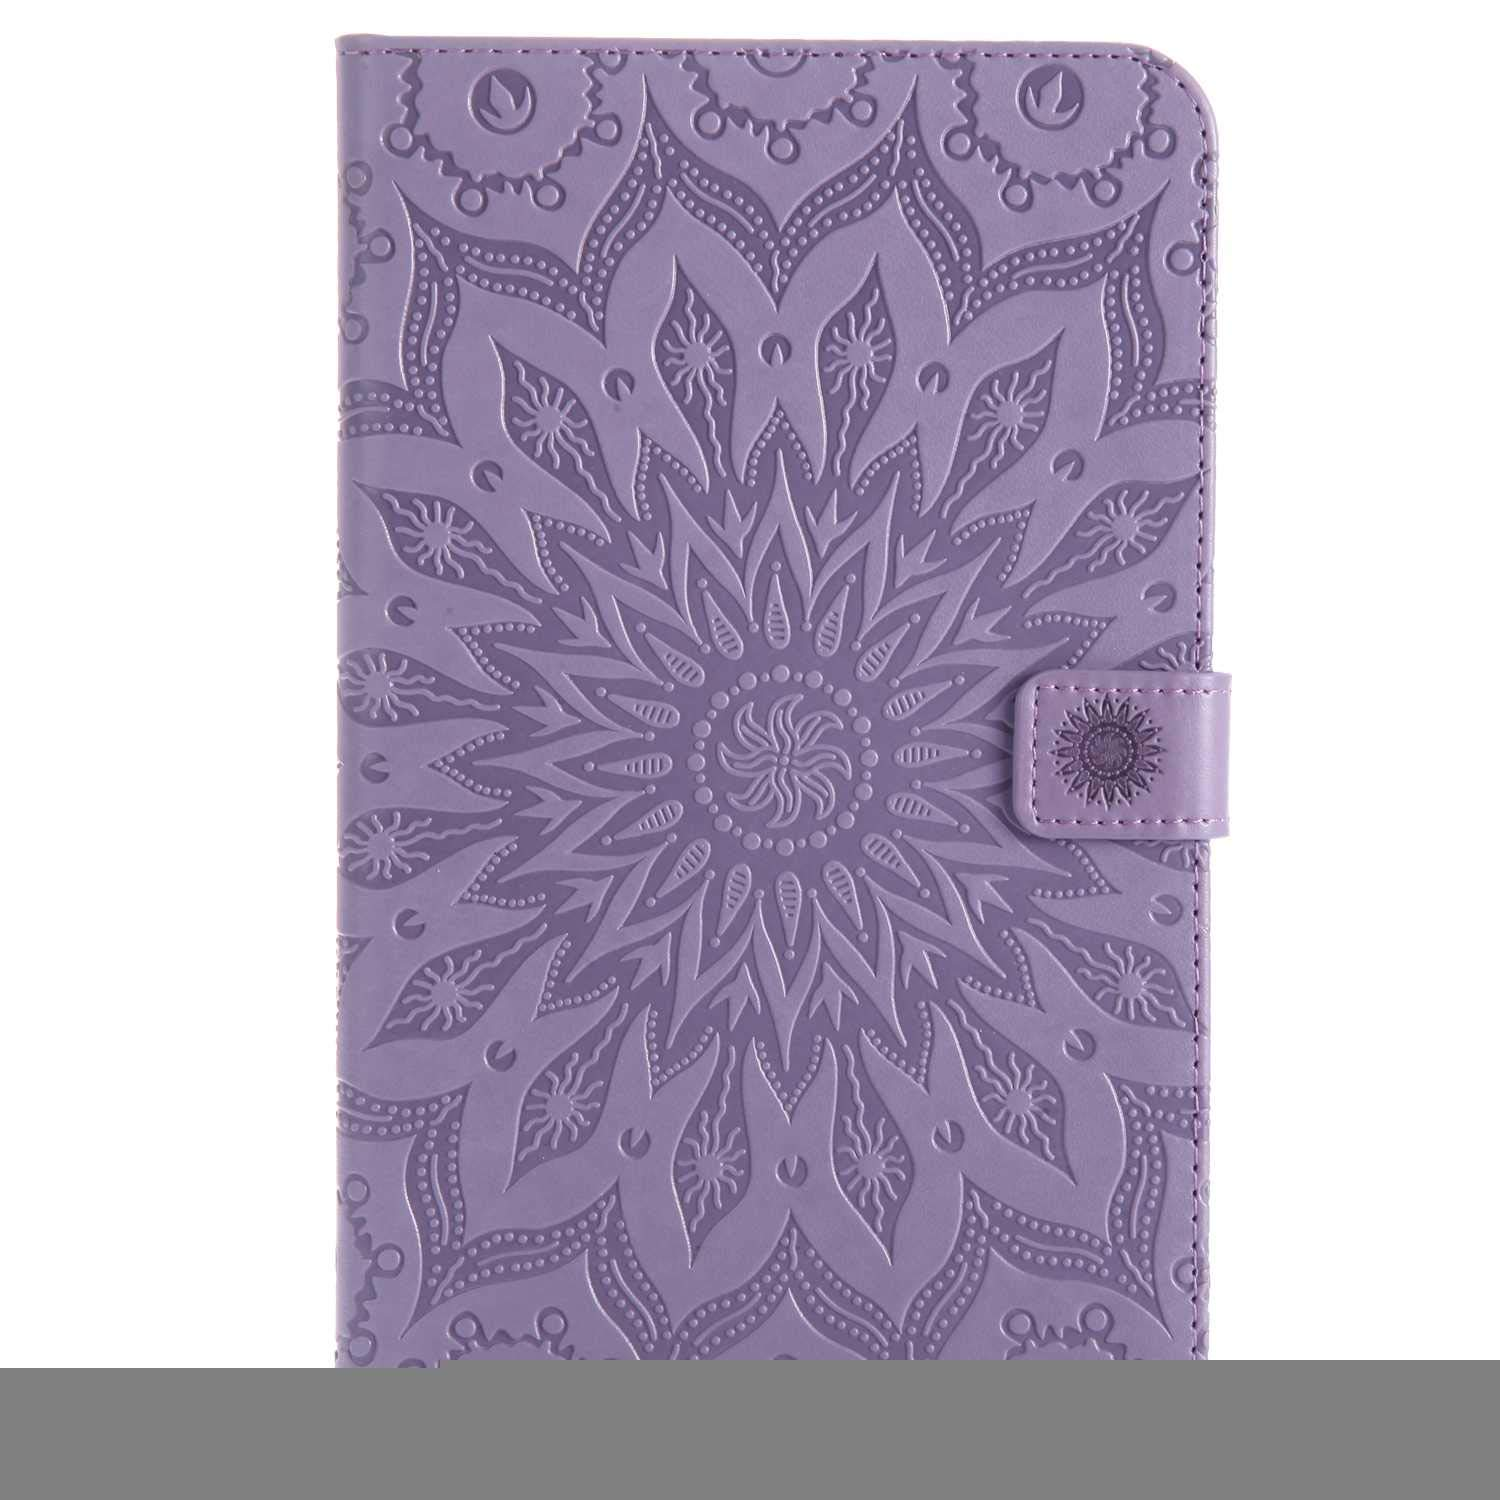 Bear Village Galaxy Tab a 2017 8.0 Inch Case, Anti Scratch Shell with Adjust Stand, Full Body Protective Cover for Samsung Galaxy Tab a 2017 8.0 Inch, Purple by Bear Village